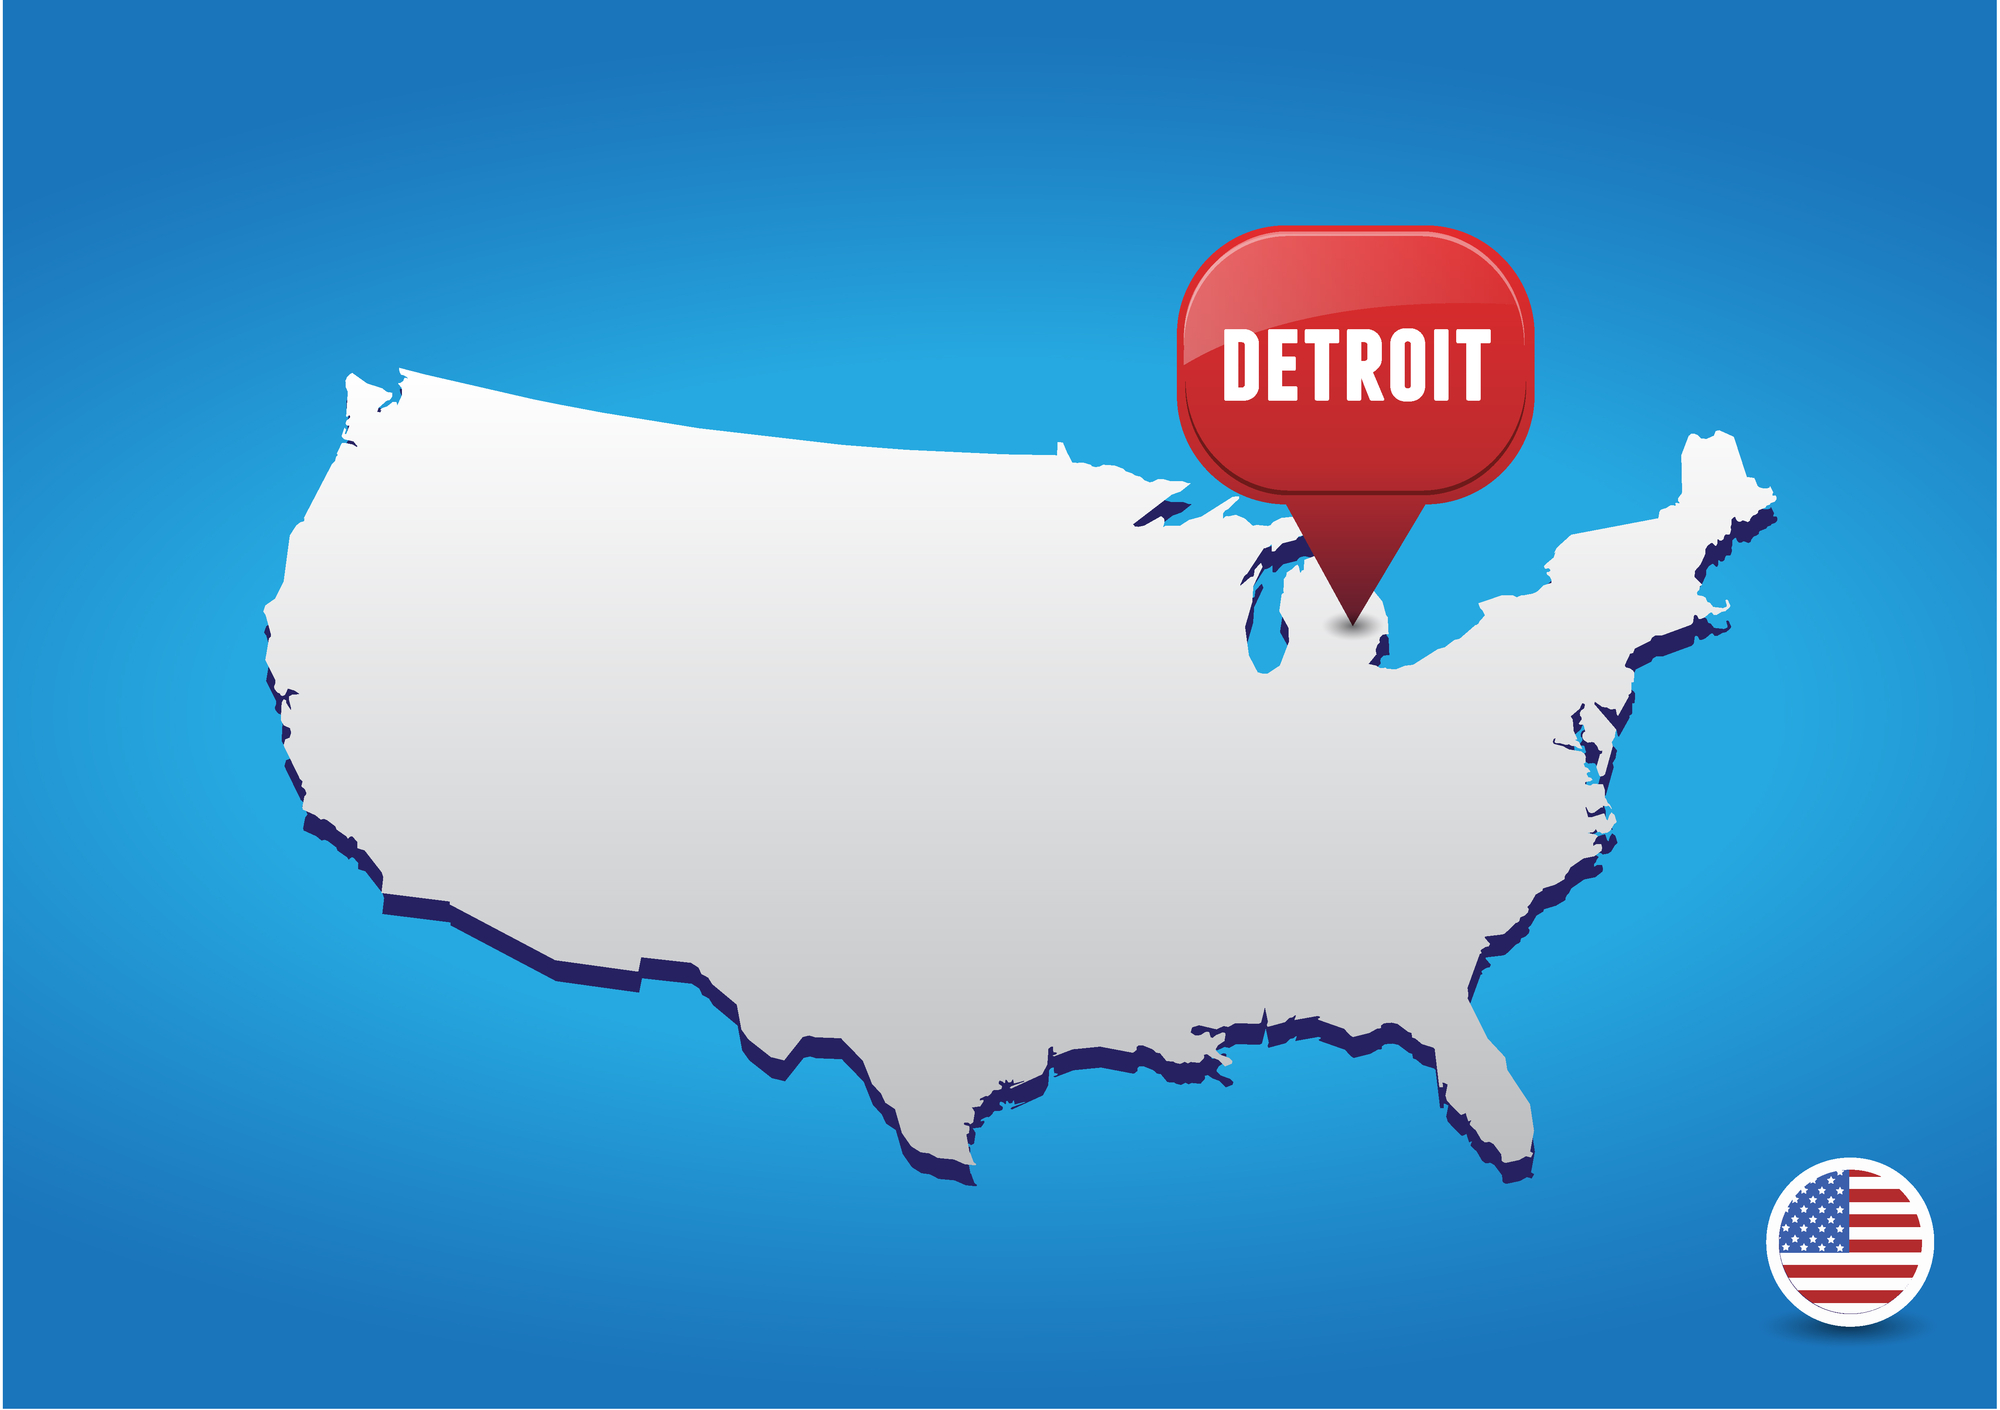 Purchasing Detroit Property for Sale as an Out-of-State Investor Image